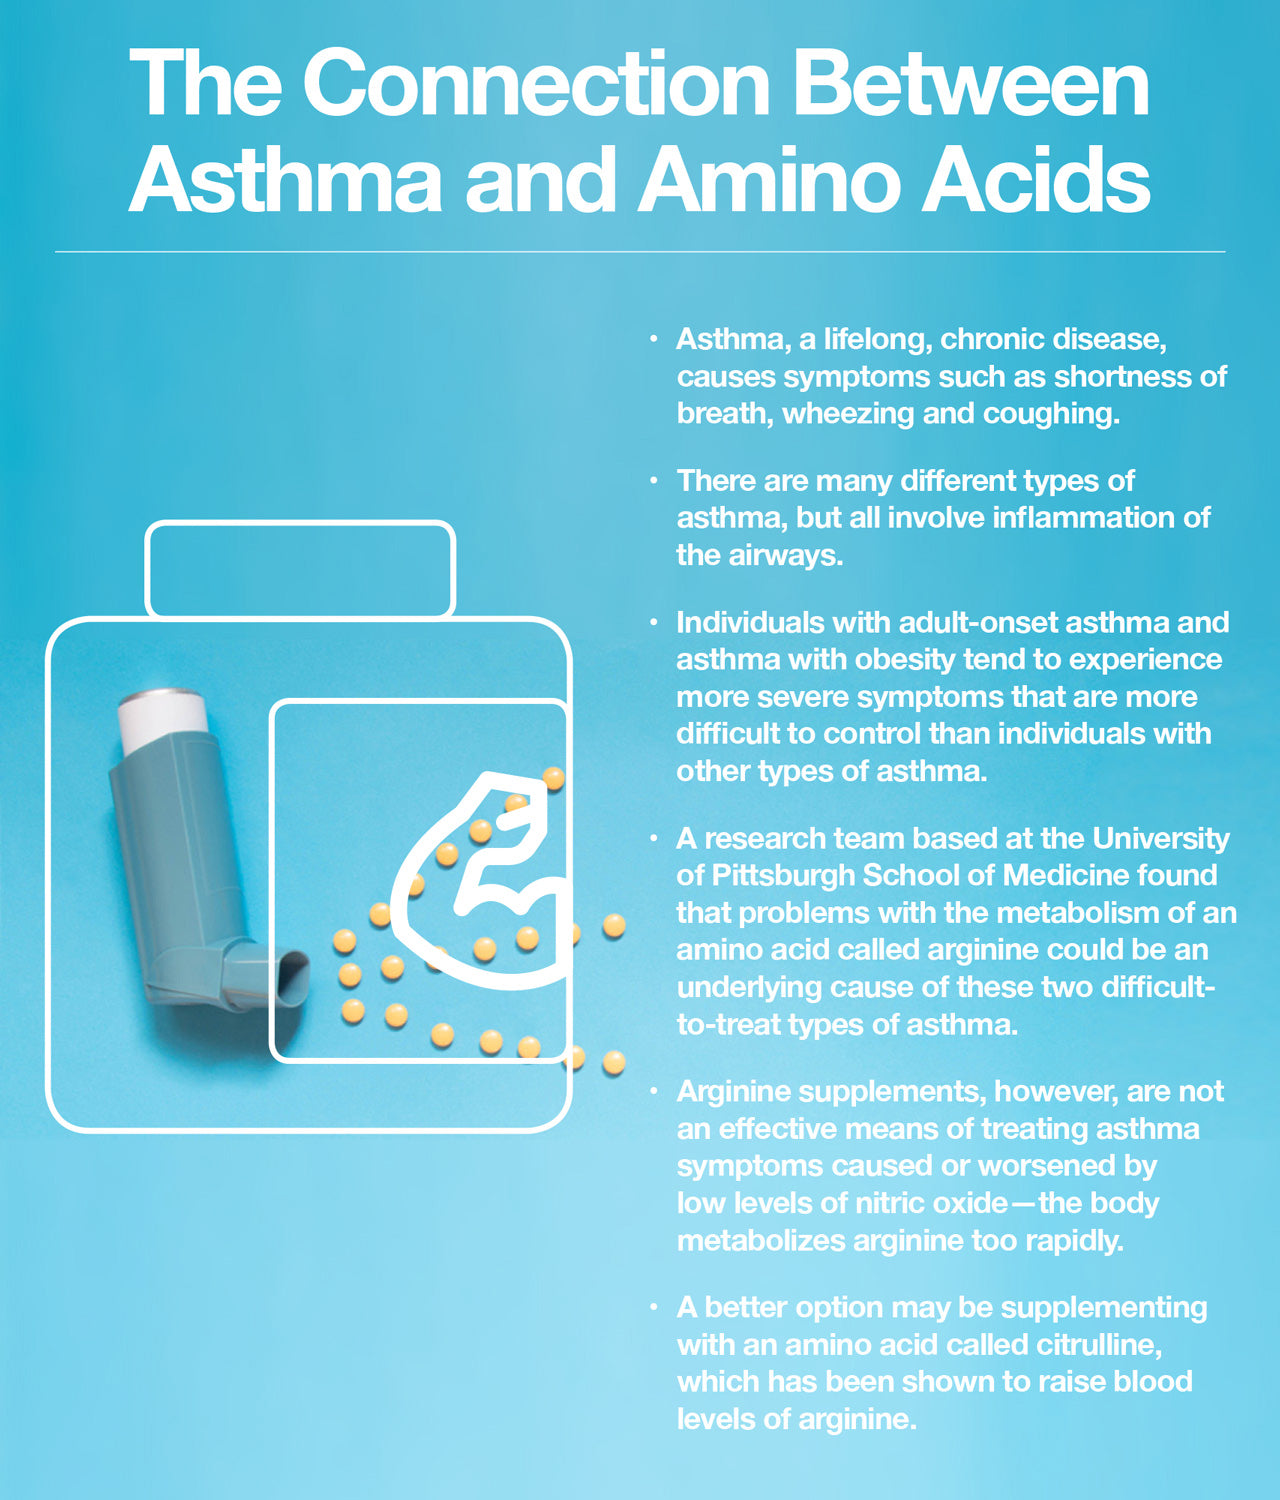 The Connection Between Asthma and Amino Acids